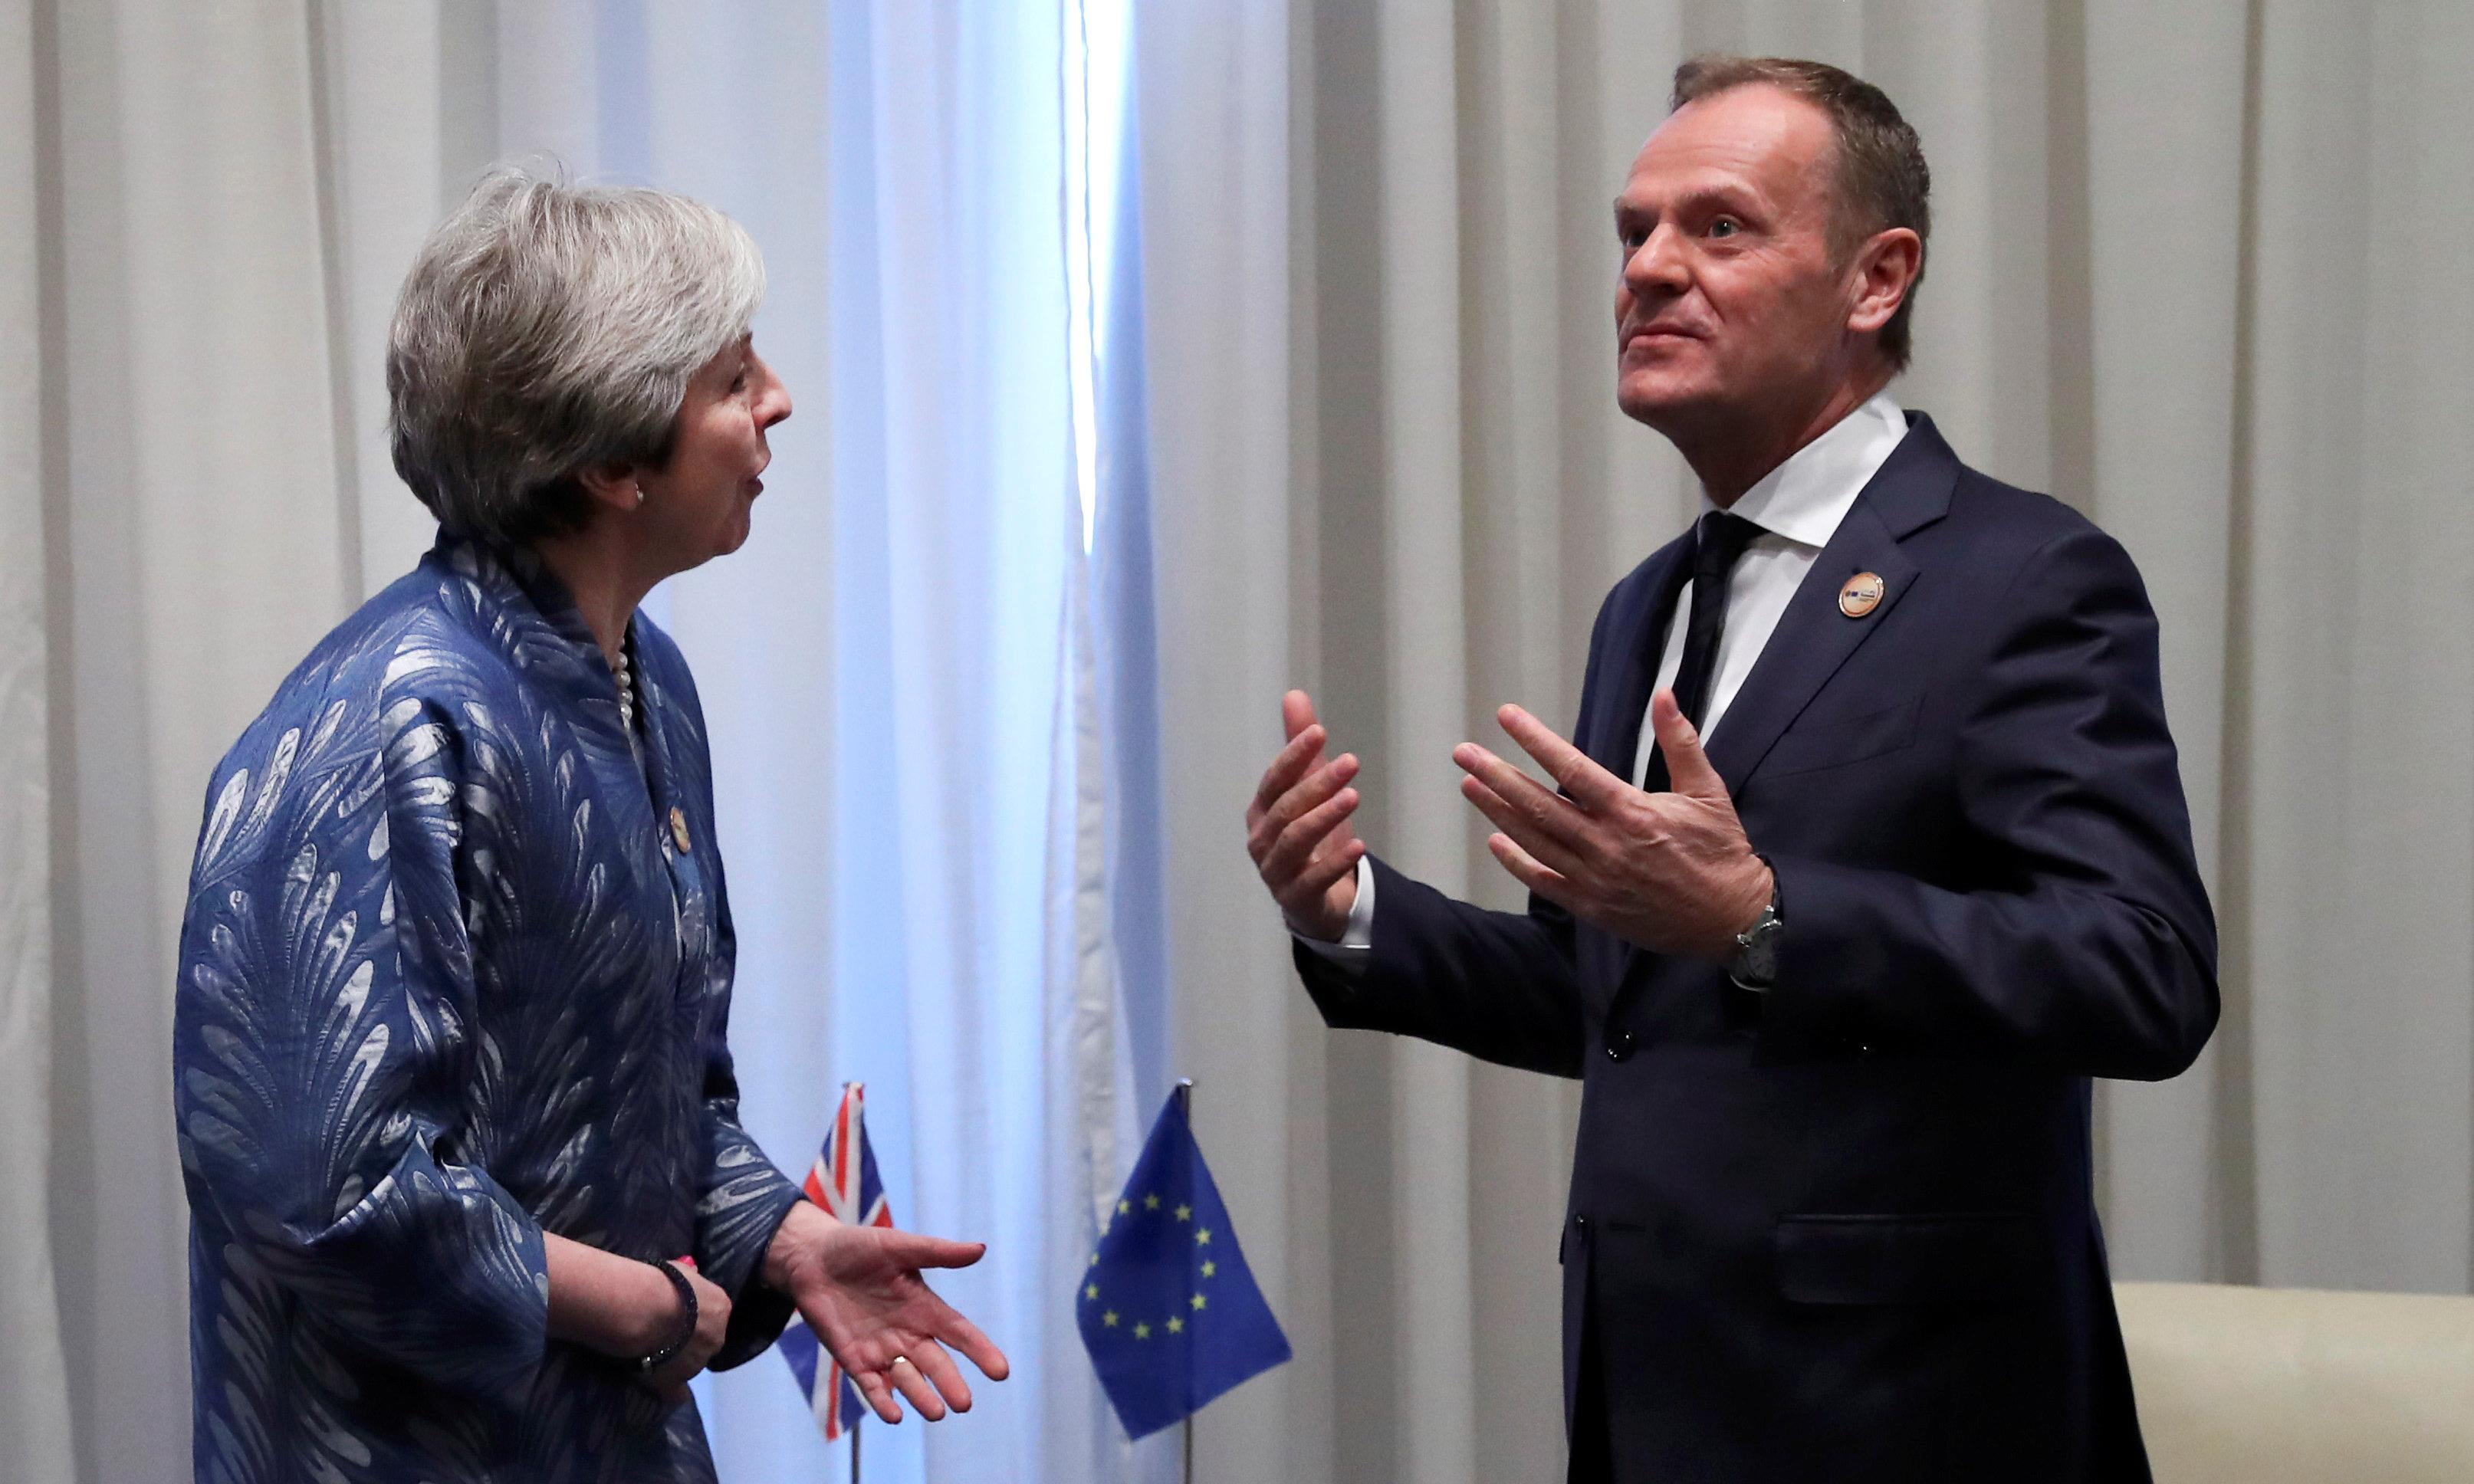 May to ask EU for Brexit extension as UK slides into political 'crisis'